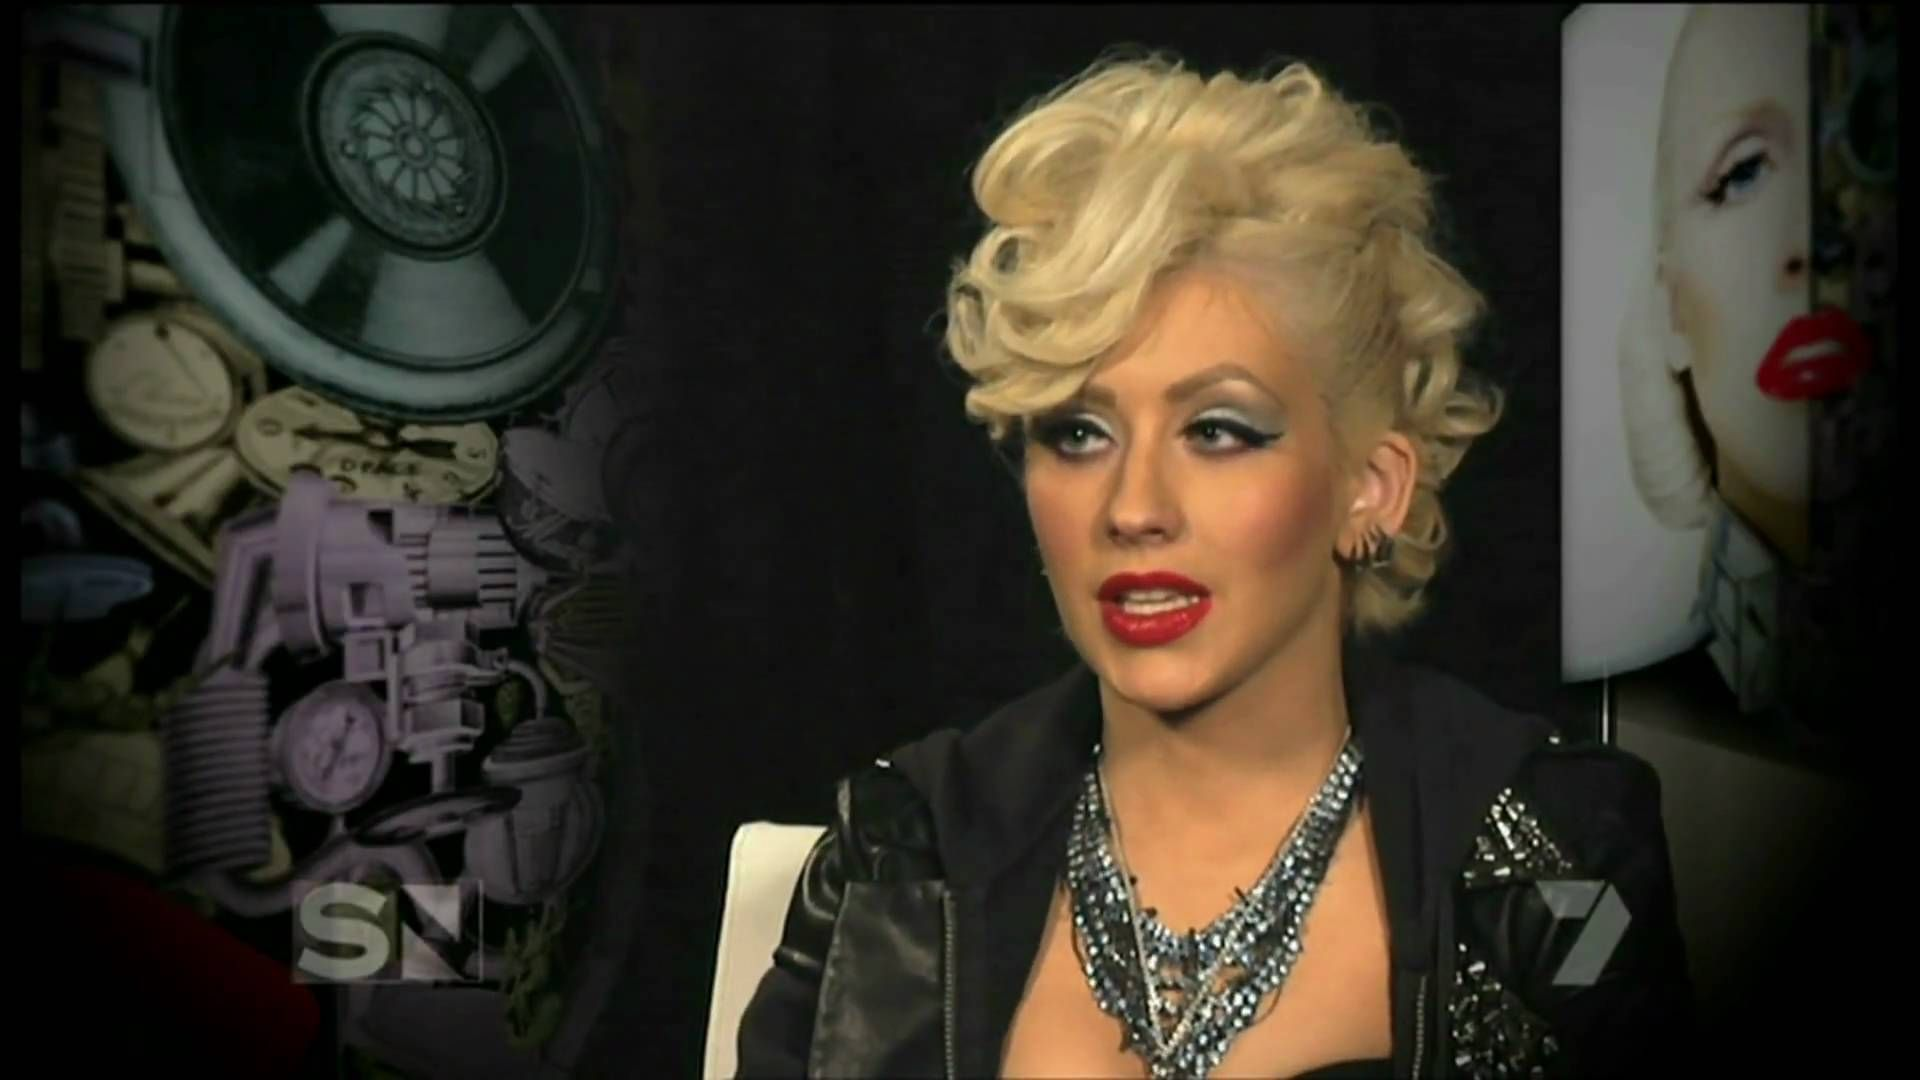 Christina Aguilera giving an interview